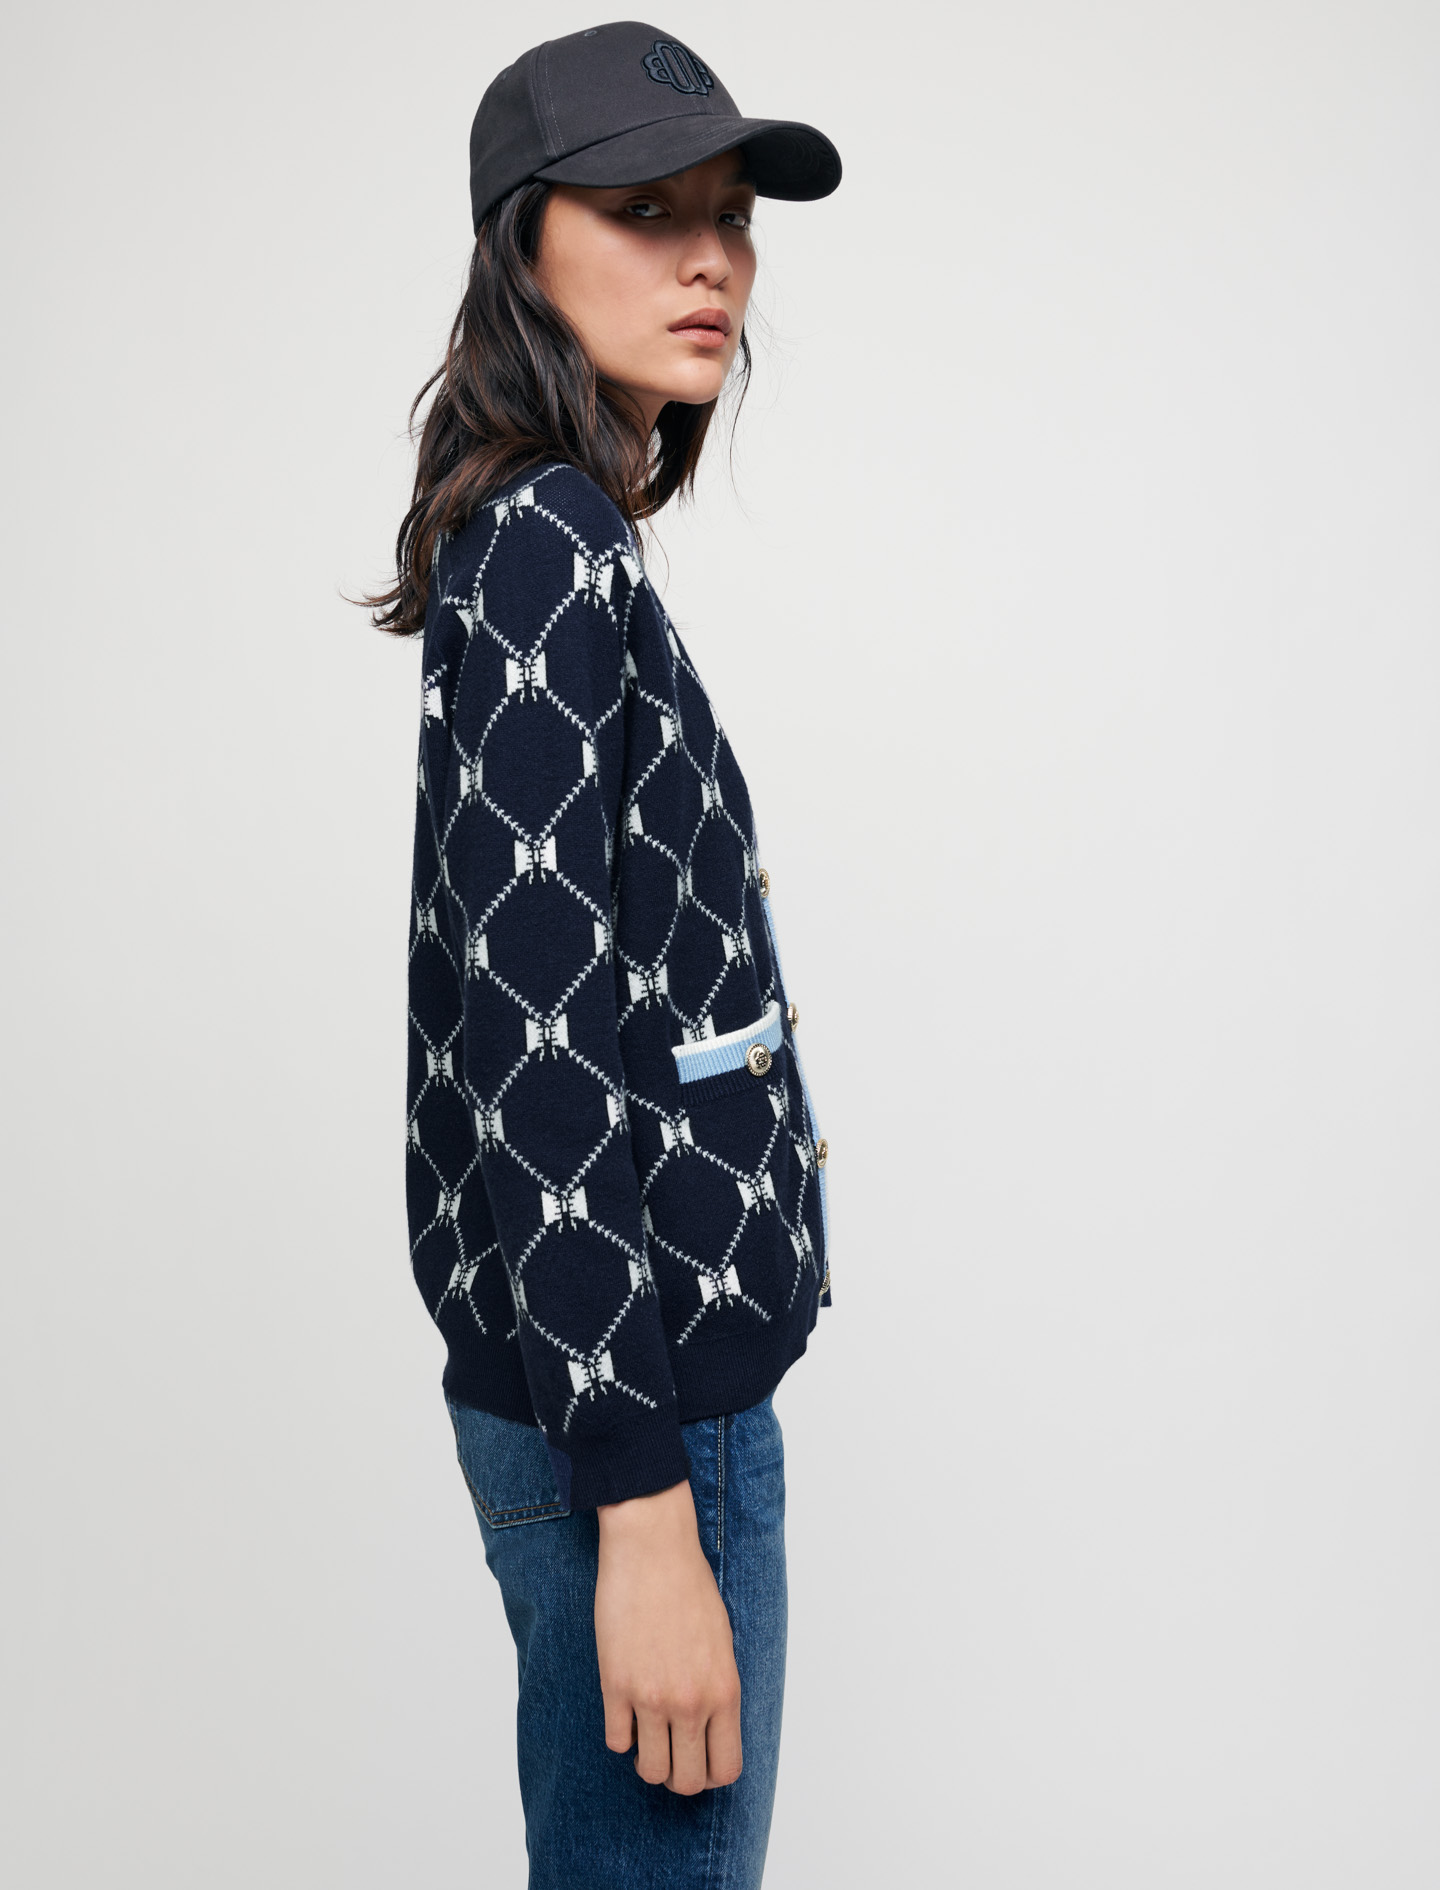 Jacquard cardigan with contrasting bows - Navy